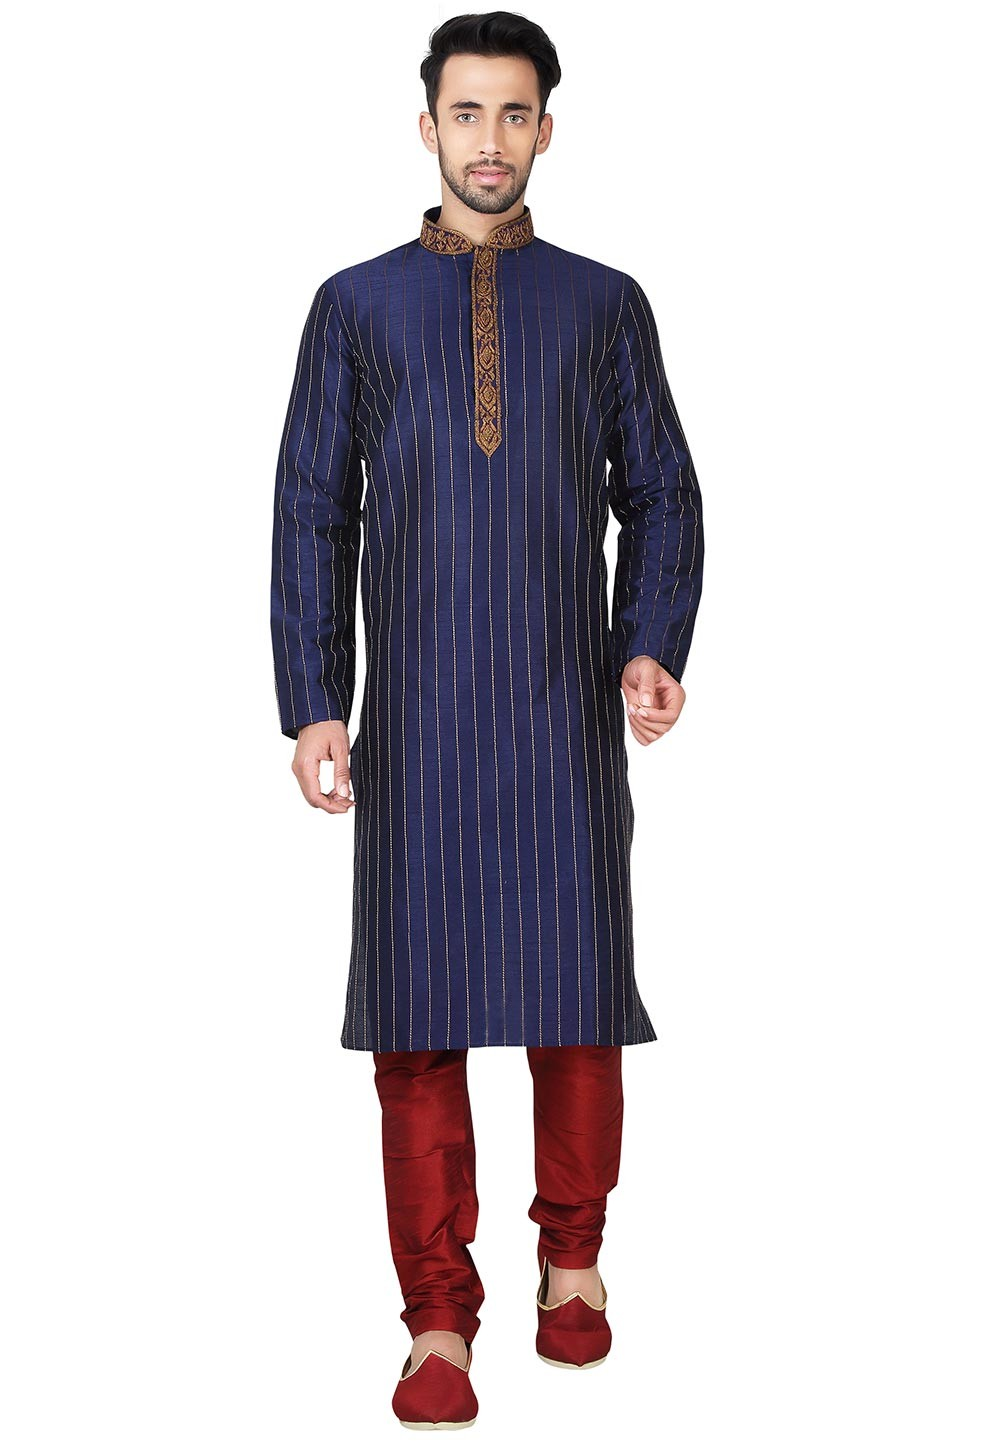 Exquisite Blue Color Art Silk Party Wear Kurta Pajama With Thread Work.